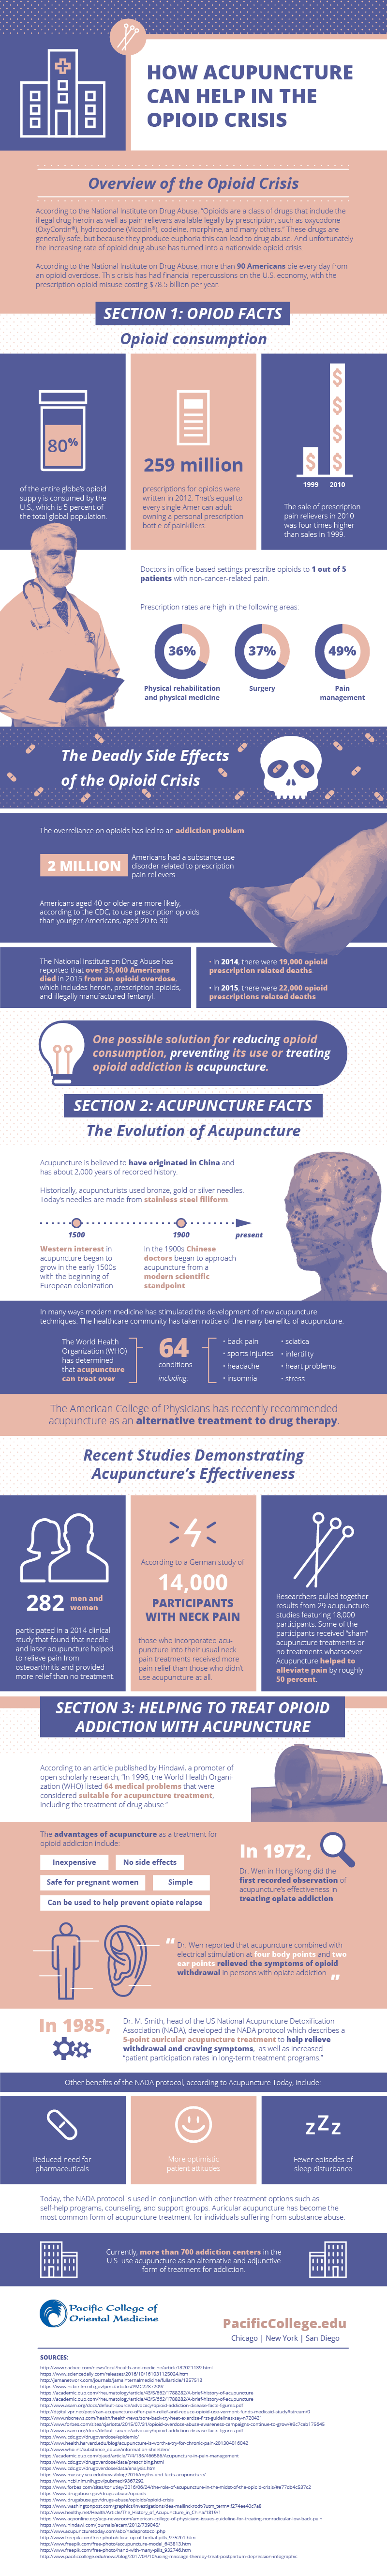 opioids and acupuncture infographic from thehttps://www.cdc.gov/drugoverdose/data/analysis.html